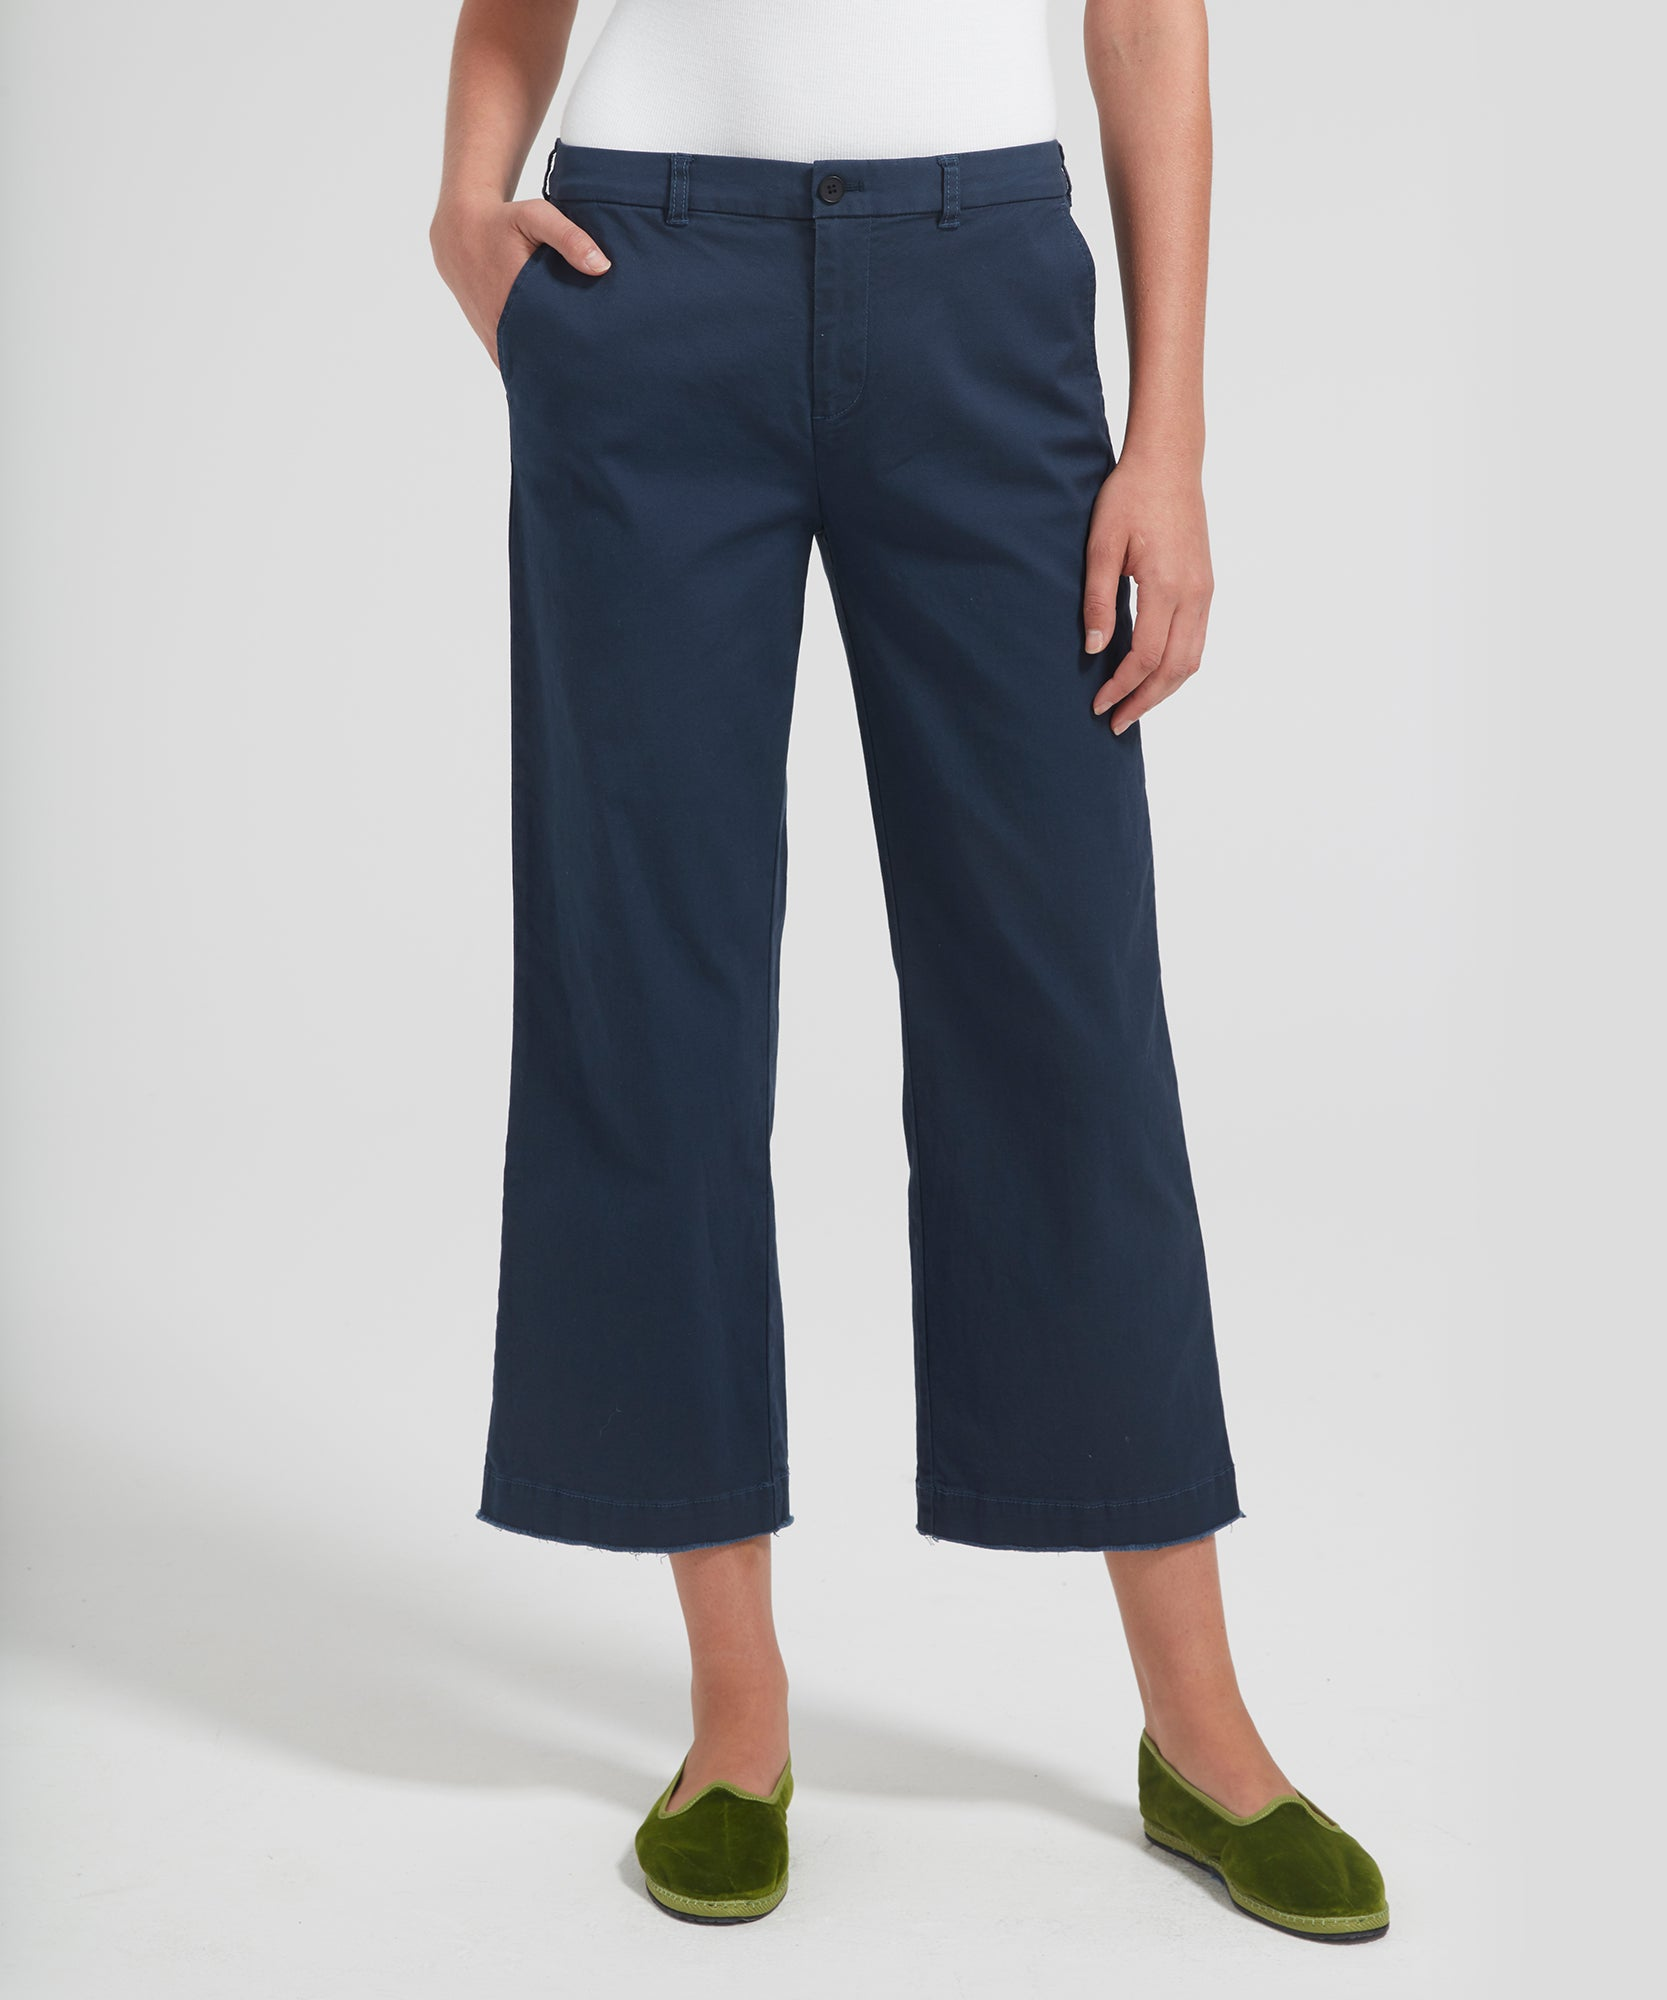 Dark Navy Cropped Boyfriend Garment Wash Pants - Women's Casual Pants by ATM Anthony Thomas Melillo